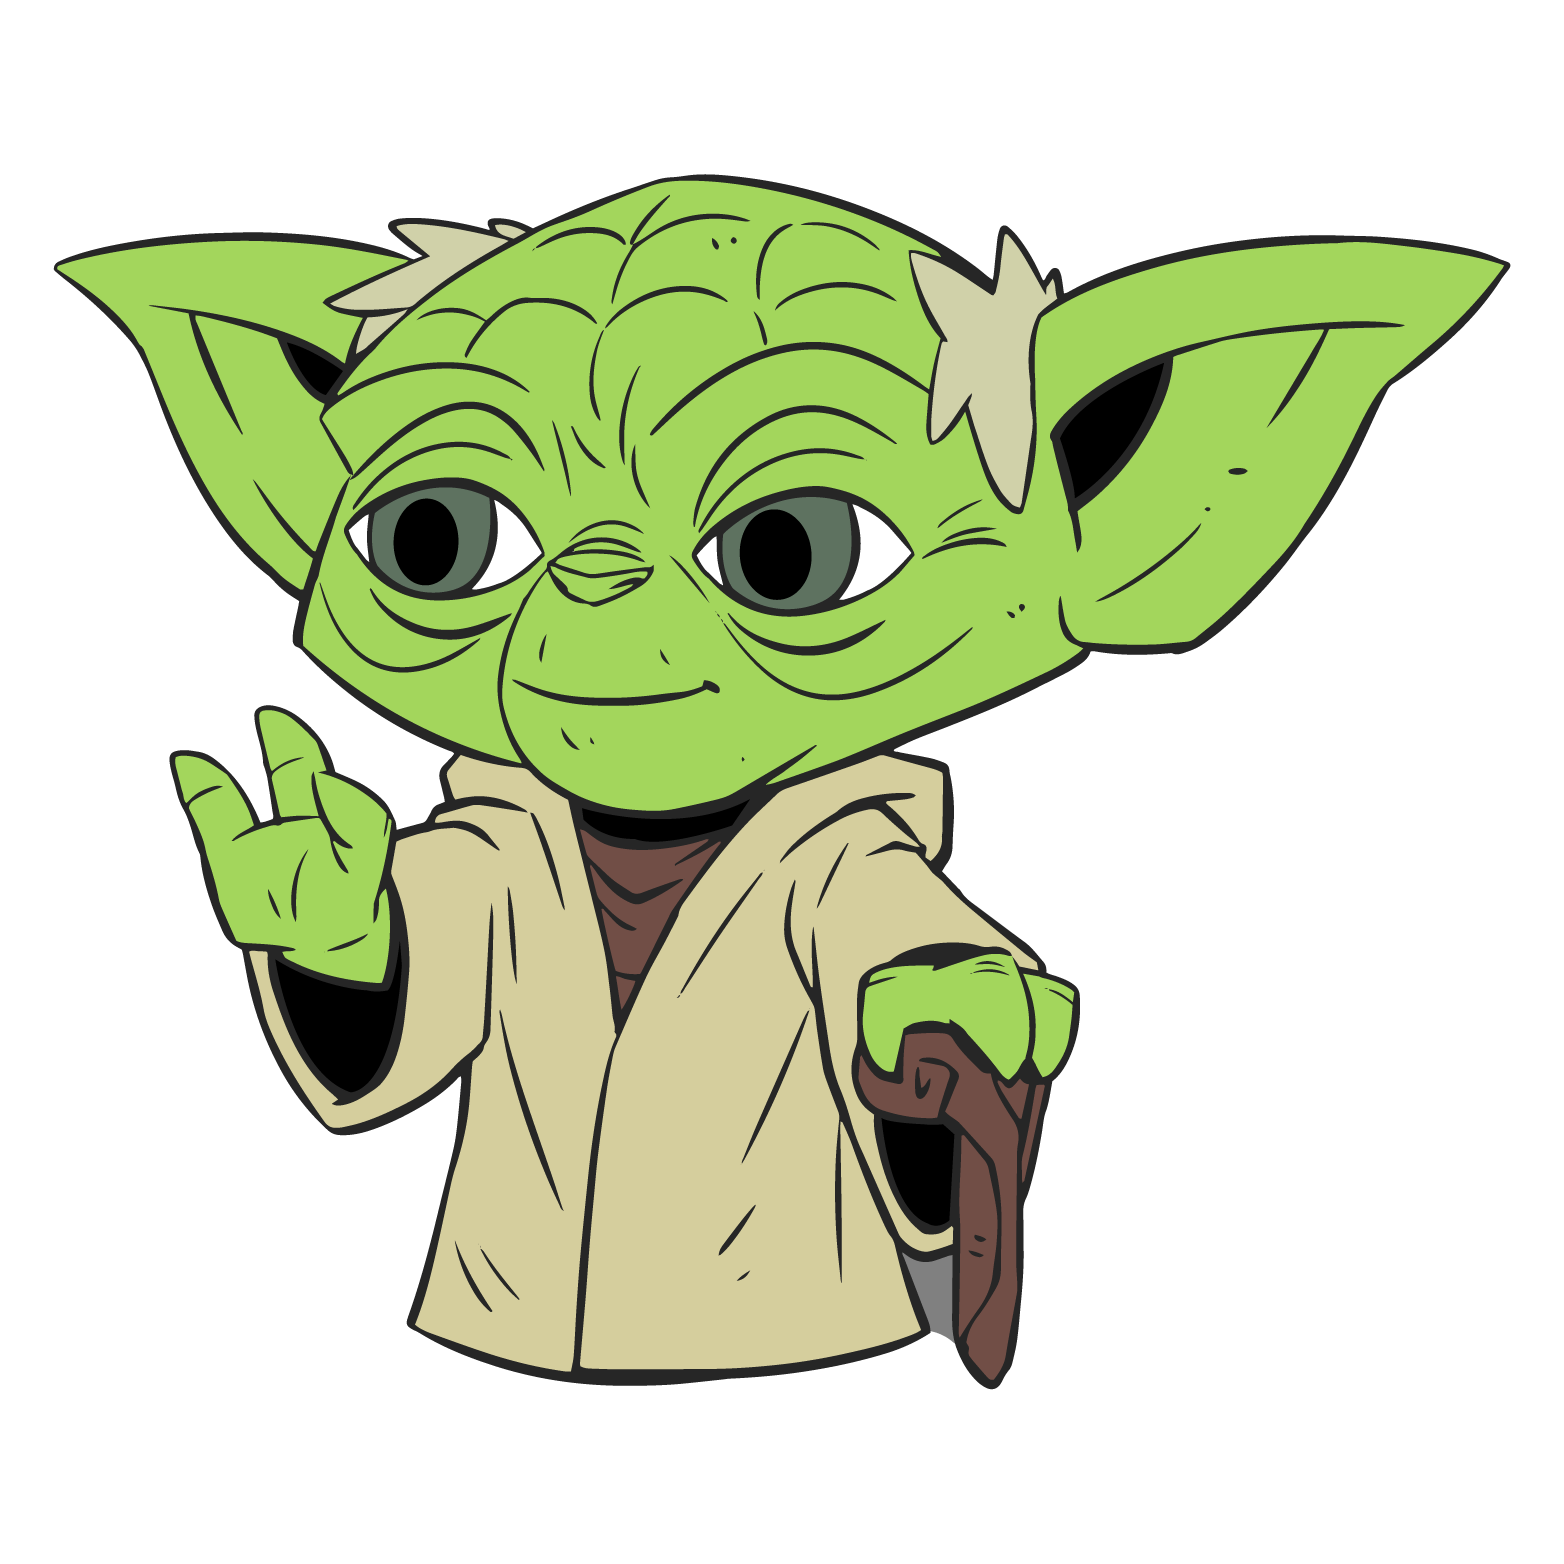 Star wars clipart luke skywalker clip royalty free library Clipart Of Yoda at GetDrawings.com | Free for personal use Clipart ... clip royalty free library